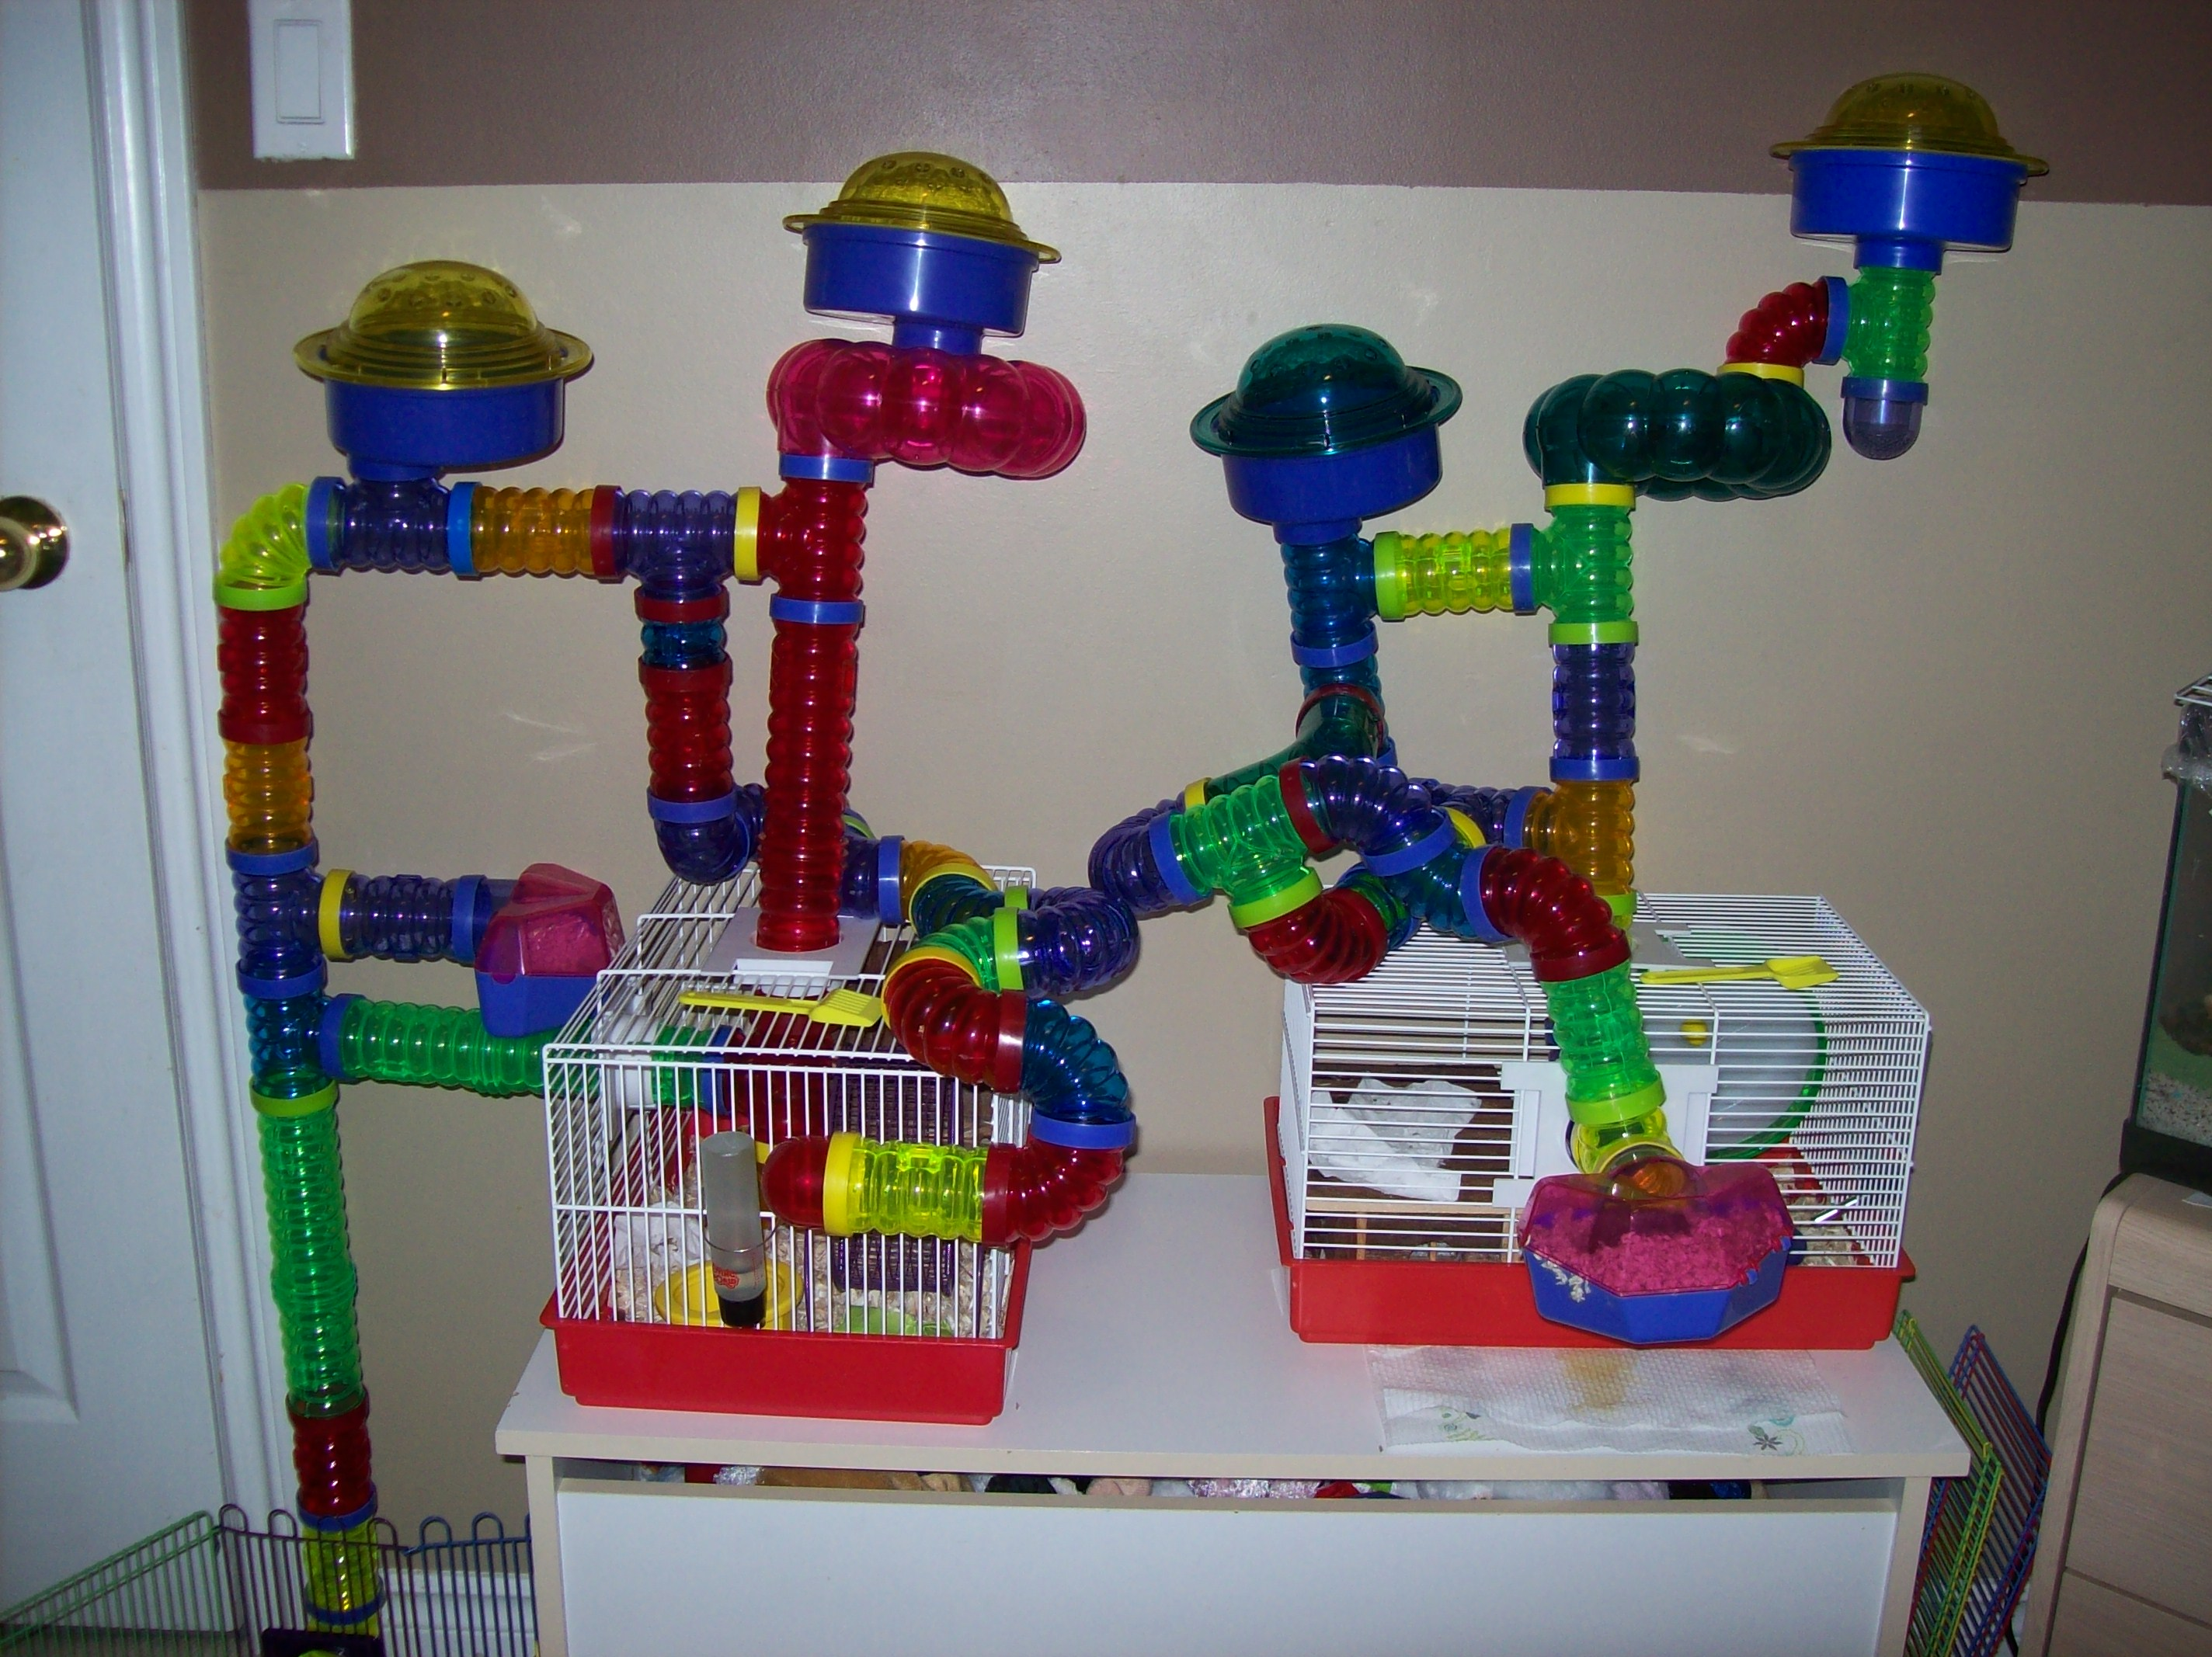 Remmy And Rommy's Current Cage Set-up